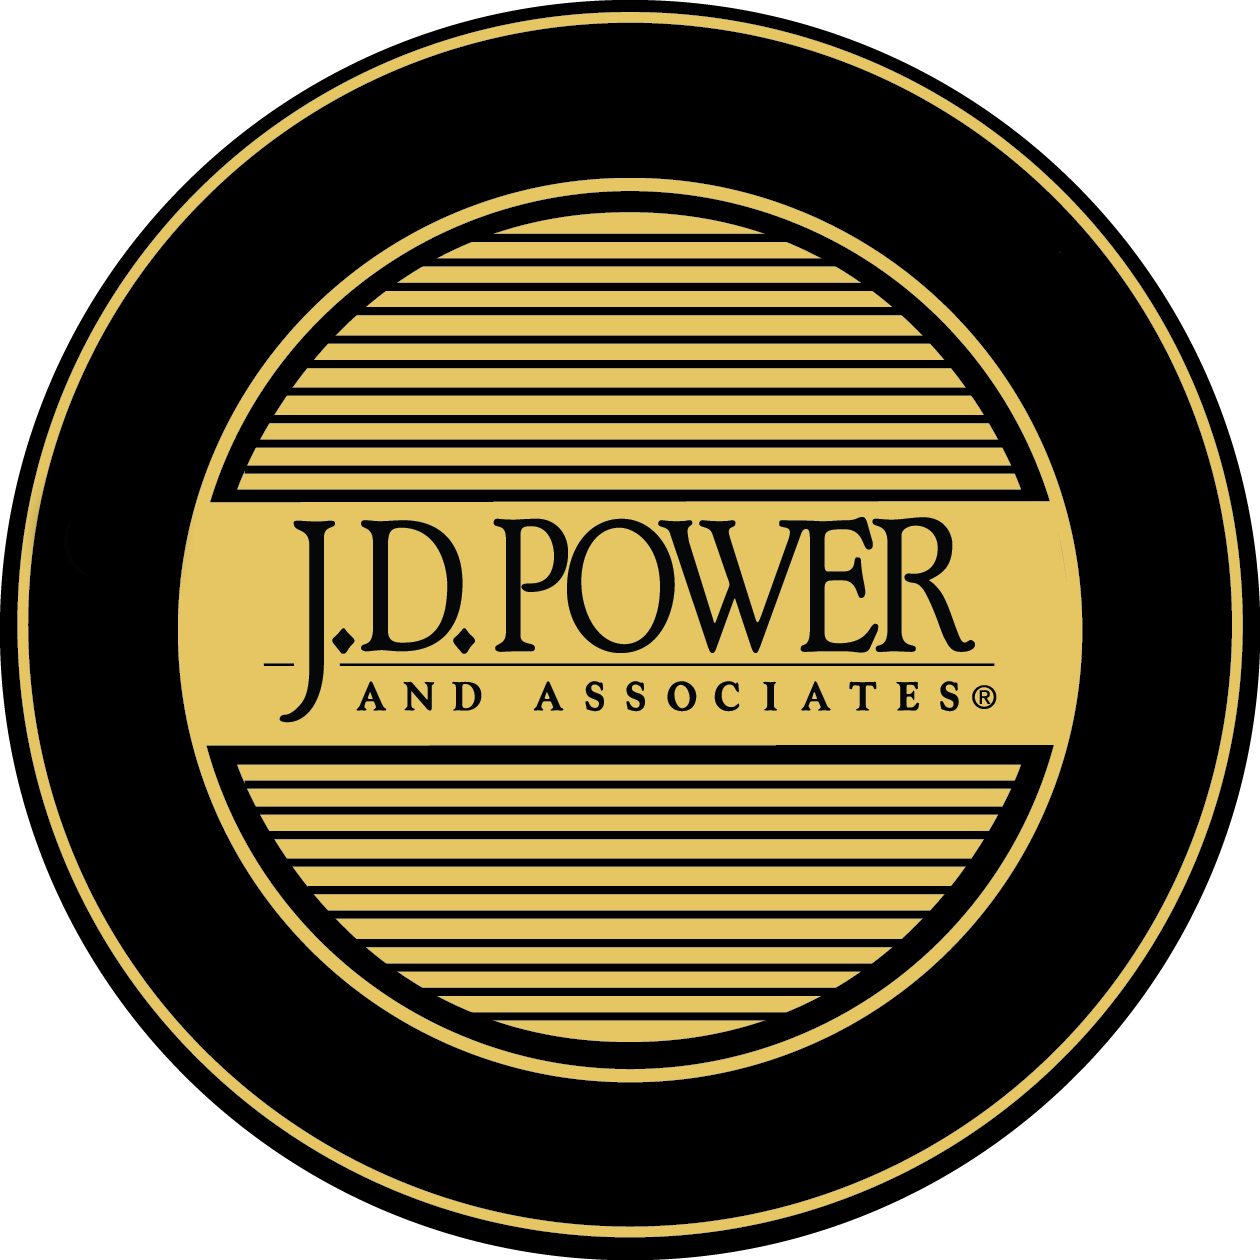 Jd power logo png. Our platform wealth strategy